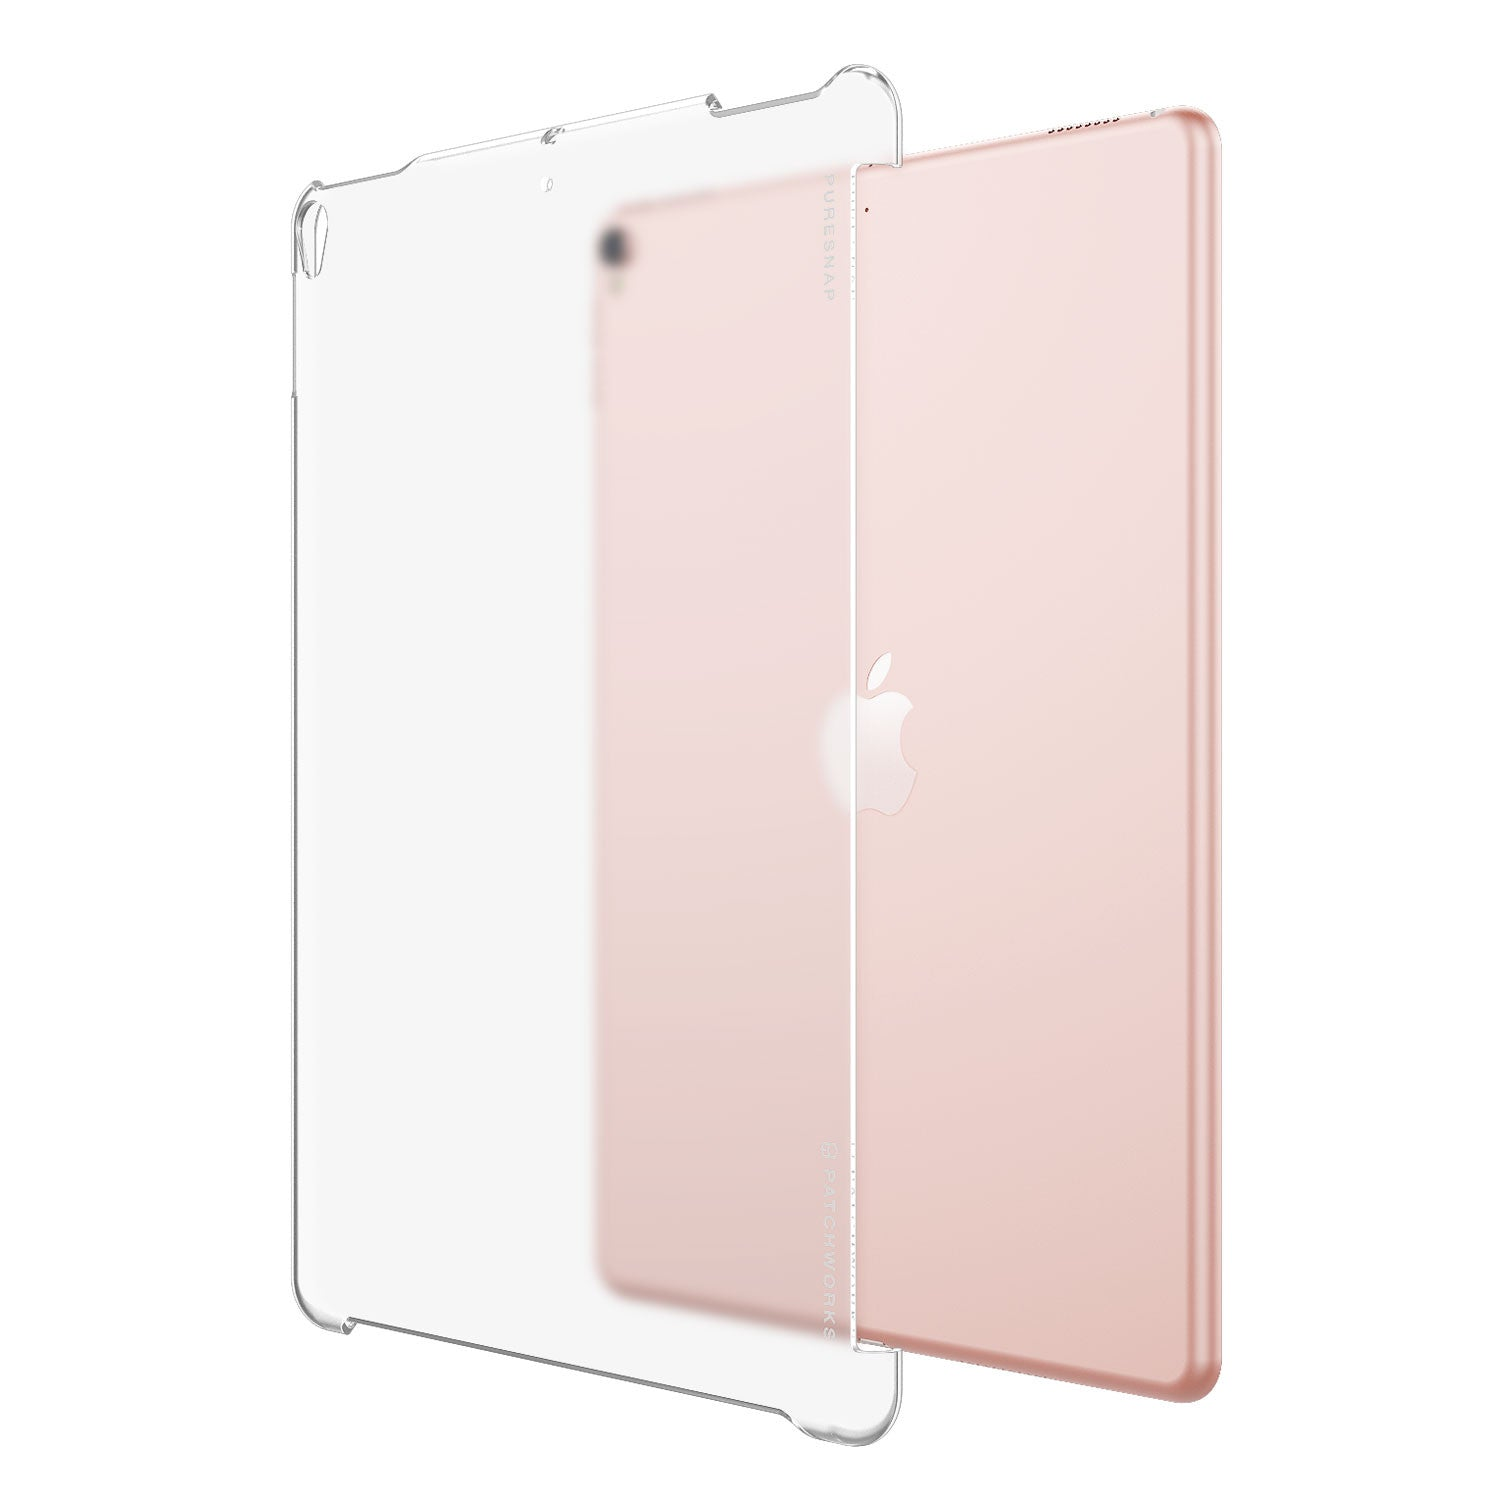 iPad Pro 10.5-inch (2017) Protective Case - PureSnap